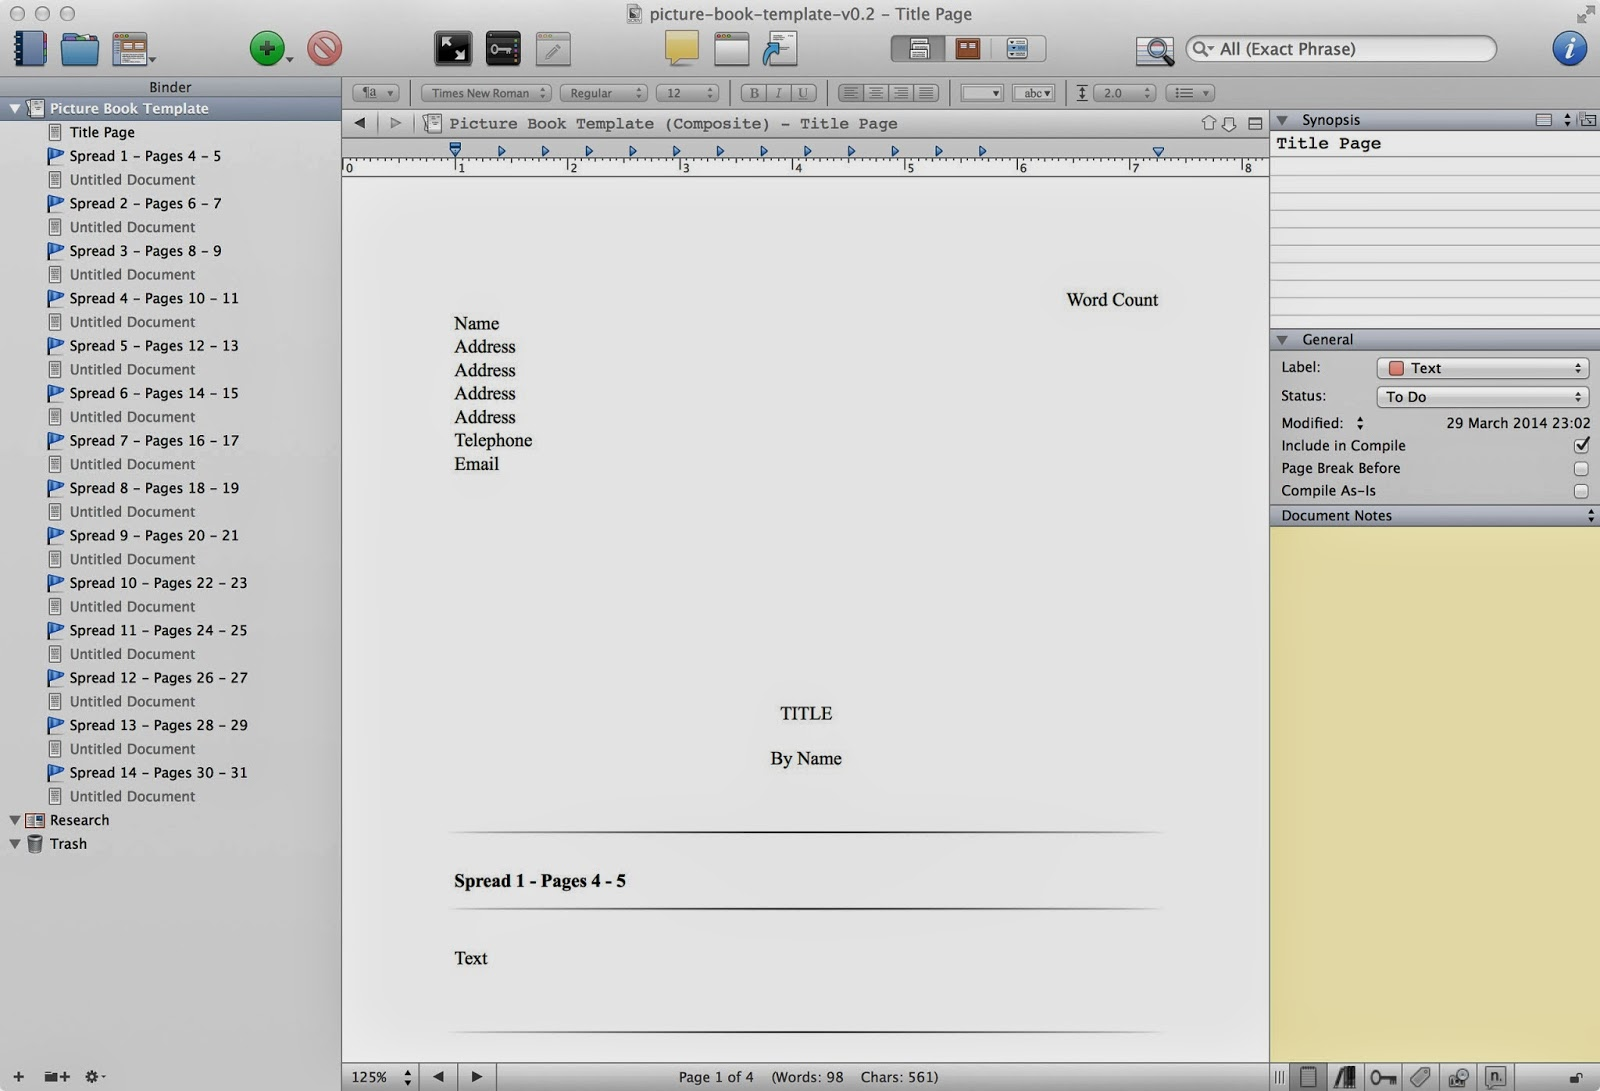 claire o brien art writing a picture book in scrivener free